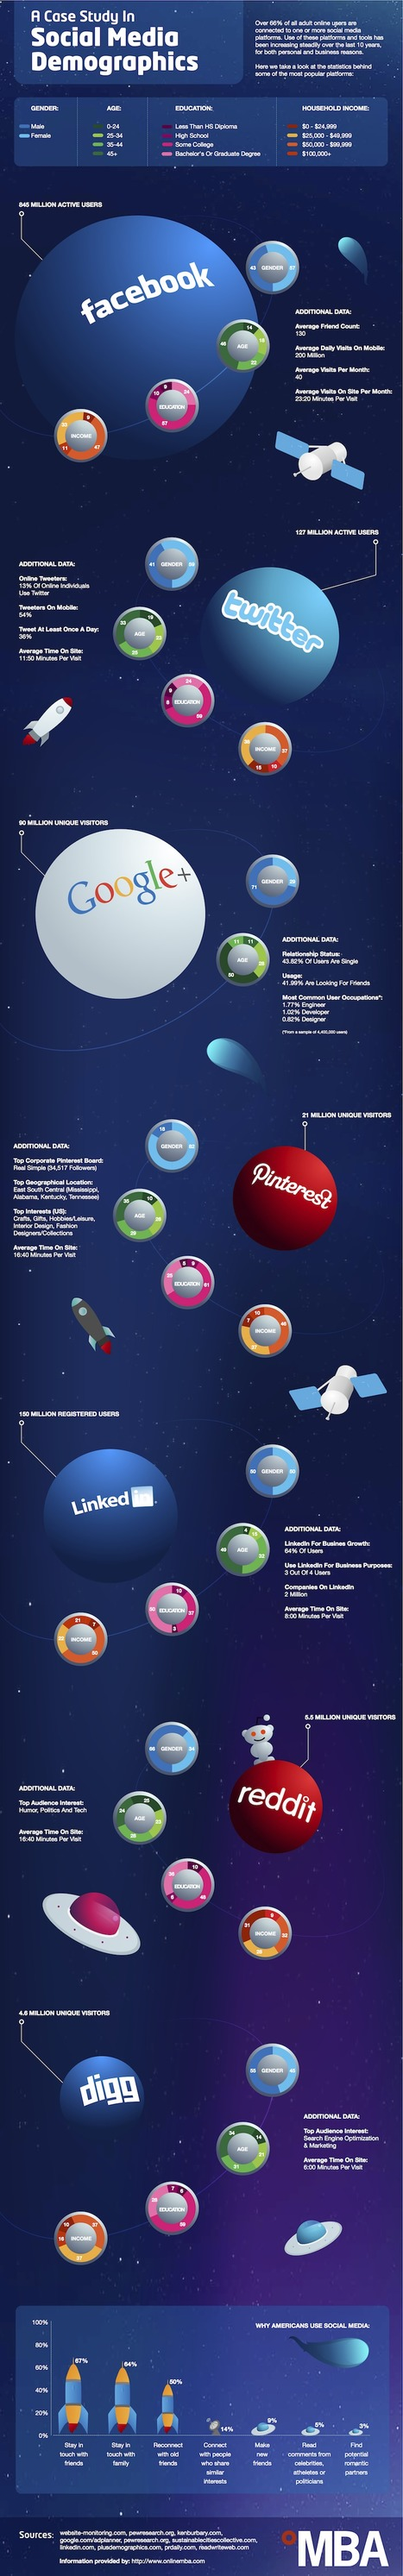 Social Media Demographics[Infographic] | Social TV is everywhere | Scoop.it